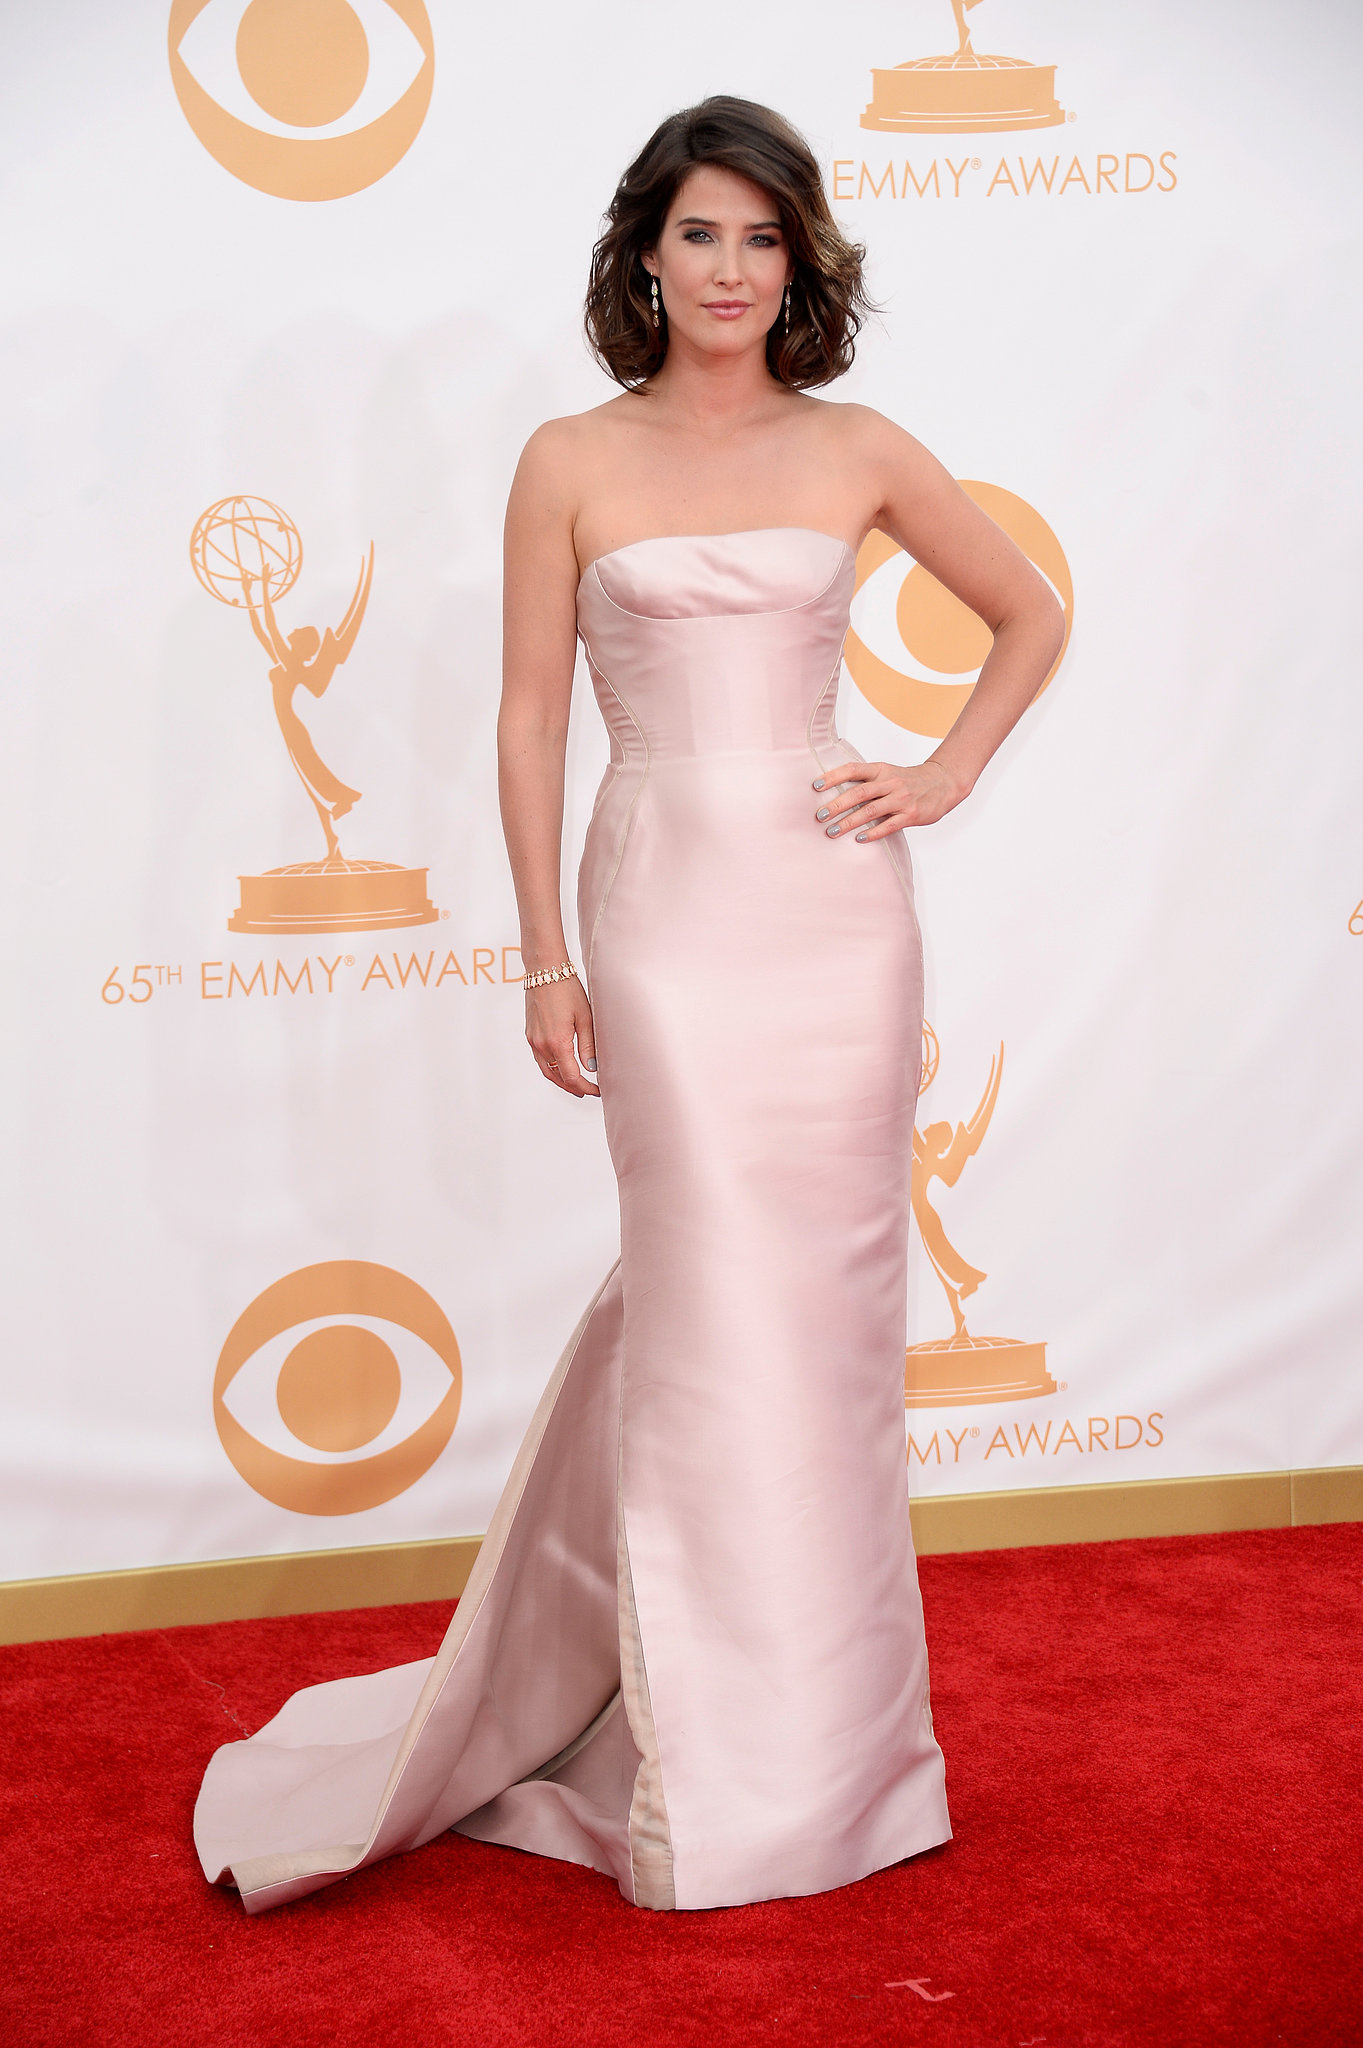 Cobie Smulders hit the red carpet at the 2013 Emmys.